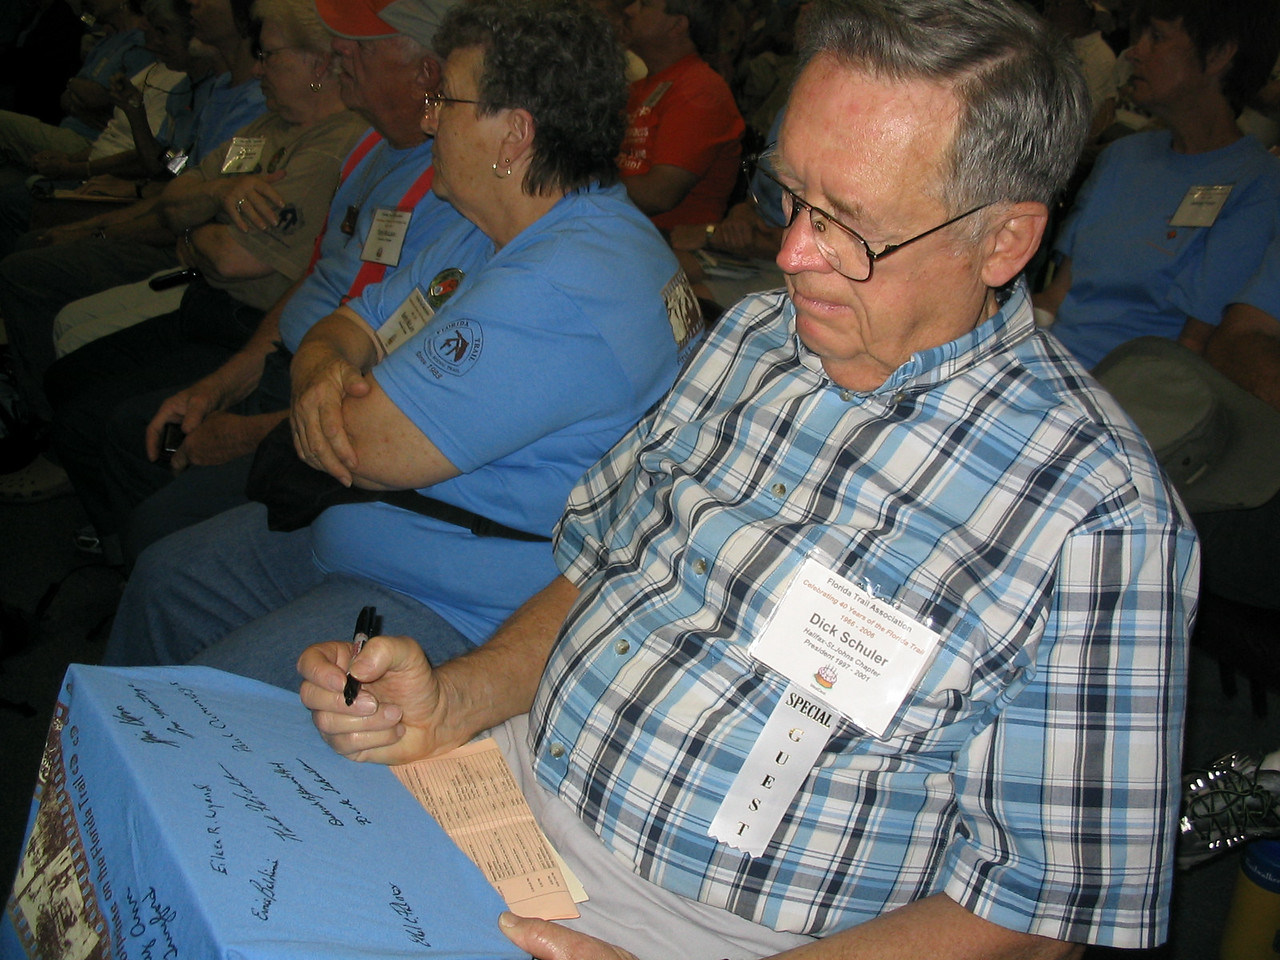 FTA past president Dick Schuler signs a commemorative t-shirt for the auction.<br /> PHOTO CREDIT: Diane Wilkins / Florida Trail Association